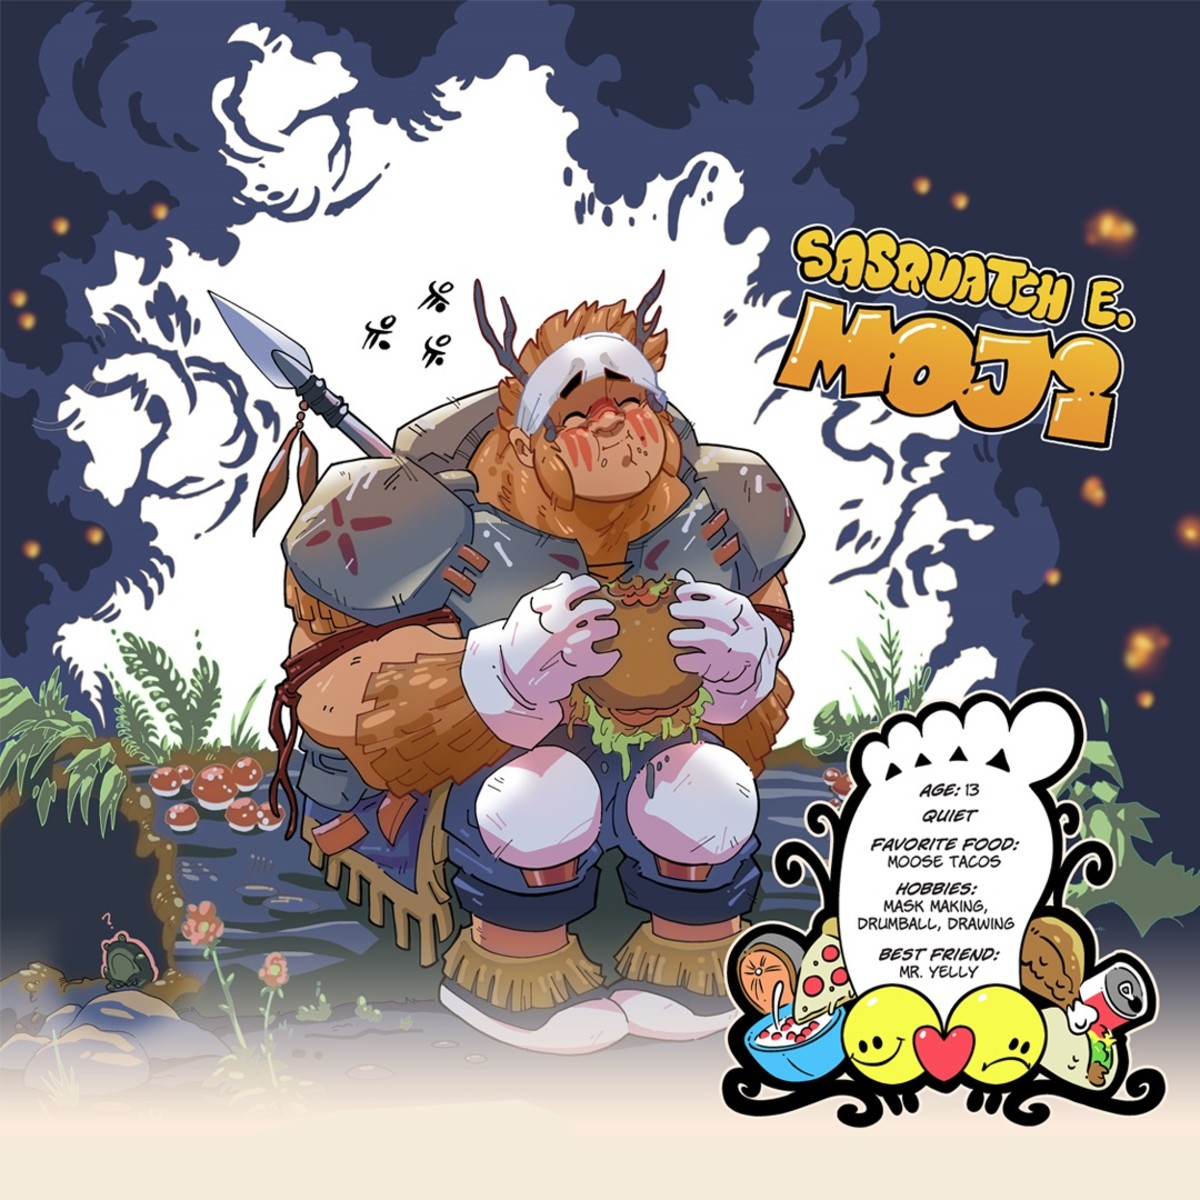 """Sasquatch E. Moji is one of two characters in a new graphic novel, """"Chickaloonies,"""" by writers/illustrators Dimi Macheras and Casey Silver. Sasquatch and his friend, Mr. Yelly, go on a quest to save their Ahtna Athabascan village while sharing their culture with the world. Macheras, who is Ahtna Athabascan, based the tale on those told by his grandmother. The book was released Aug. 1, 2021. (Photo courtesy of Dimi Macheras and Casey Silver)"""